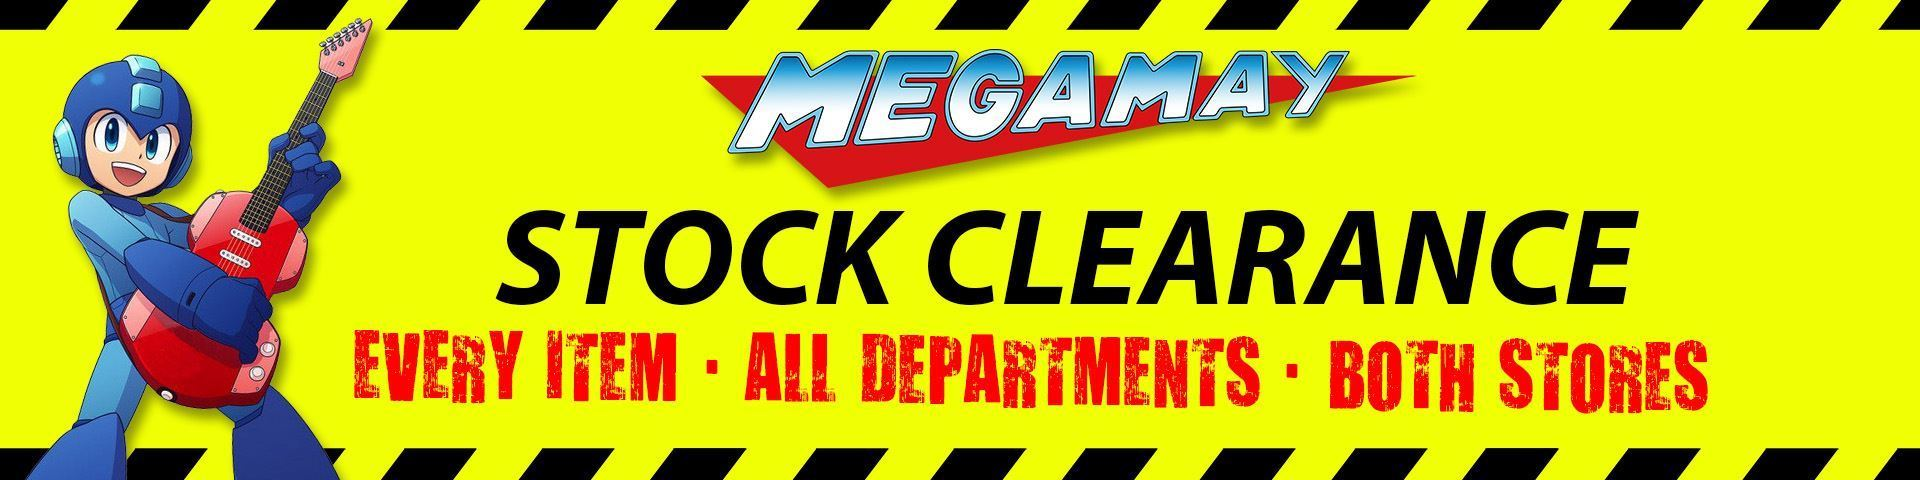 Mega May Stock Clearance - Every Item on Sale